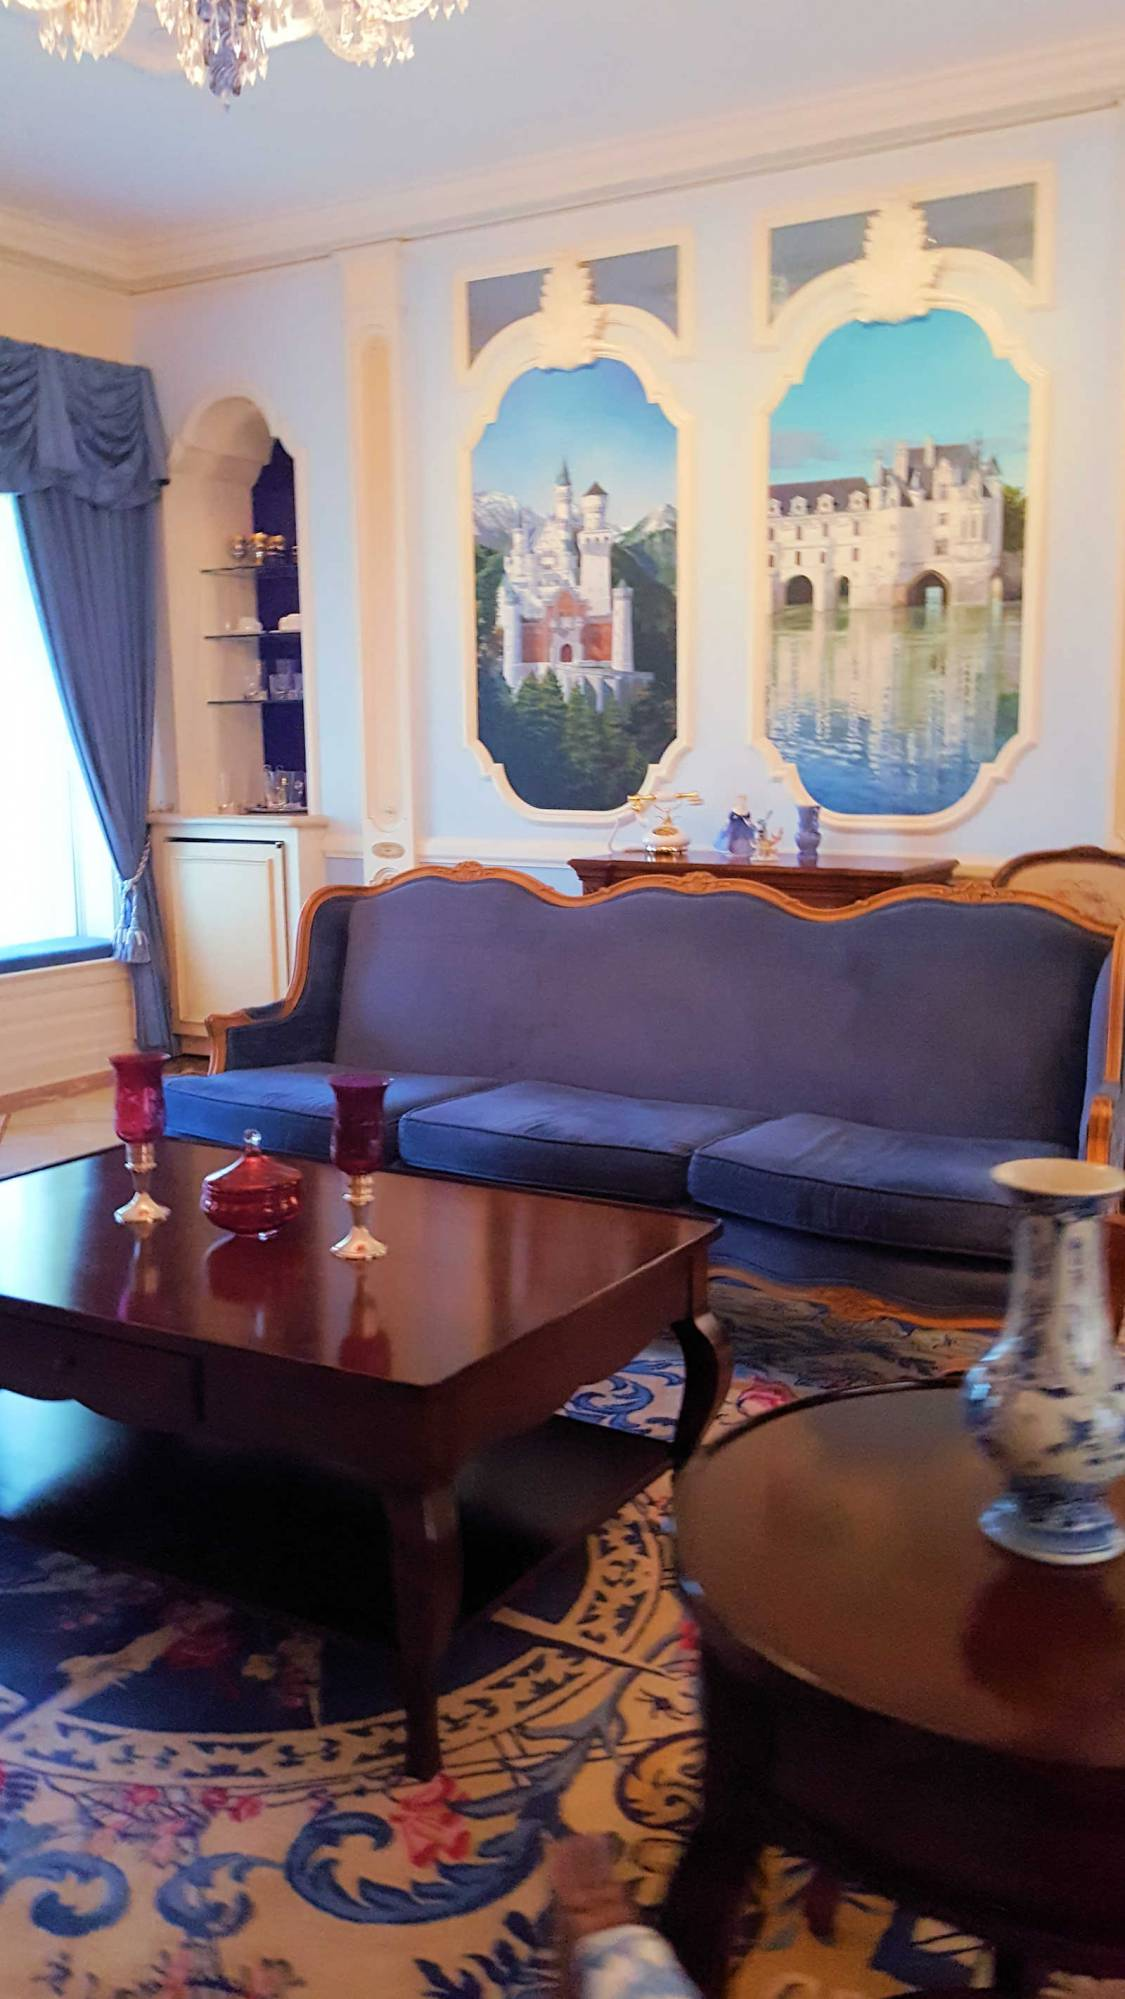 Peek Inside the Disneyland Dream Suite with firsthand photos of the invitation-only suite at Disneyland Park | PassPorter.com